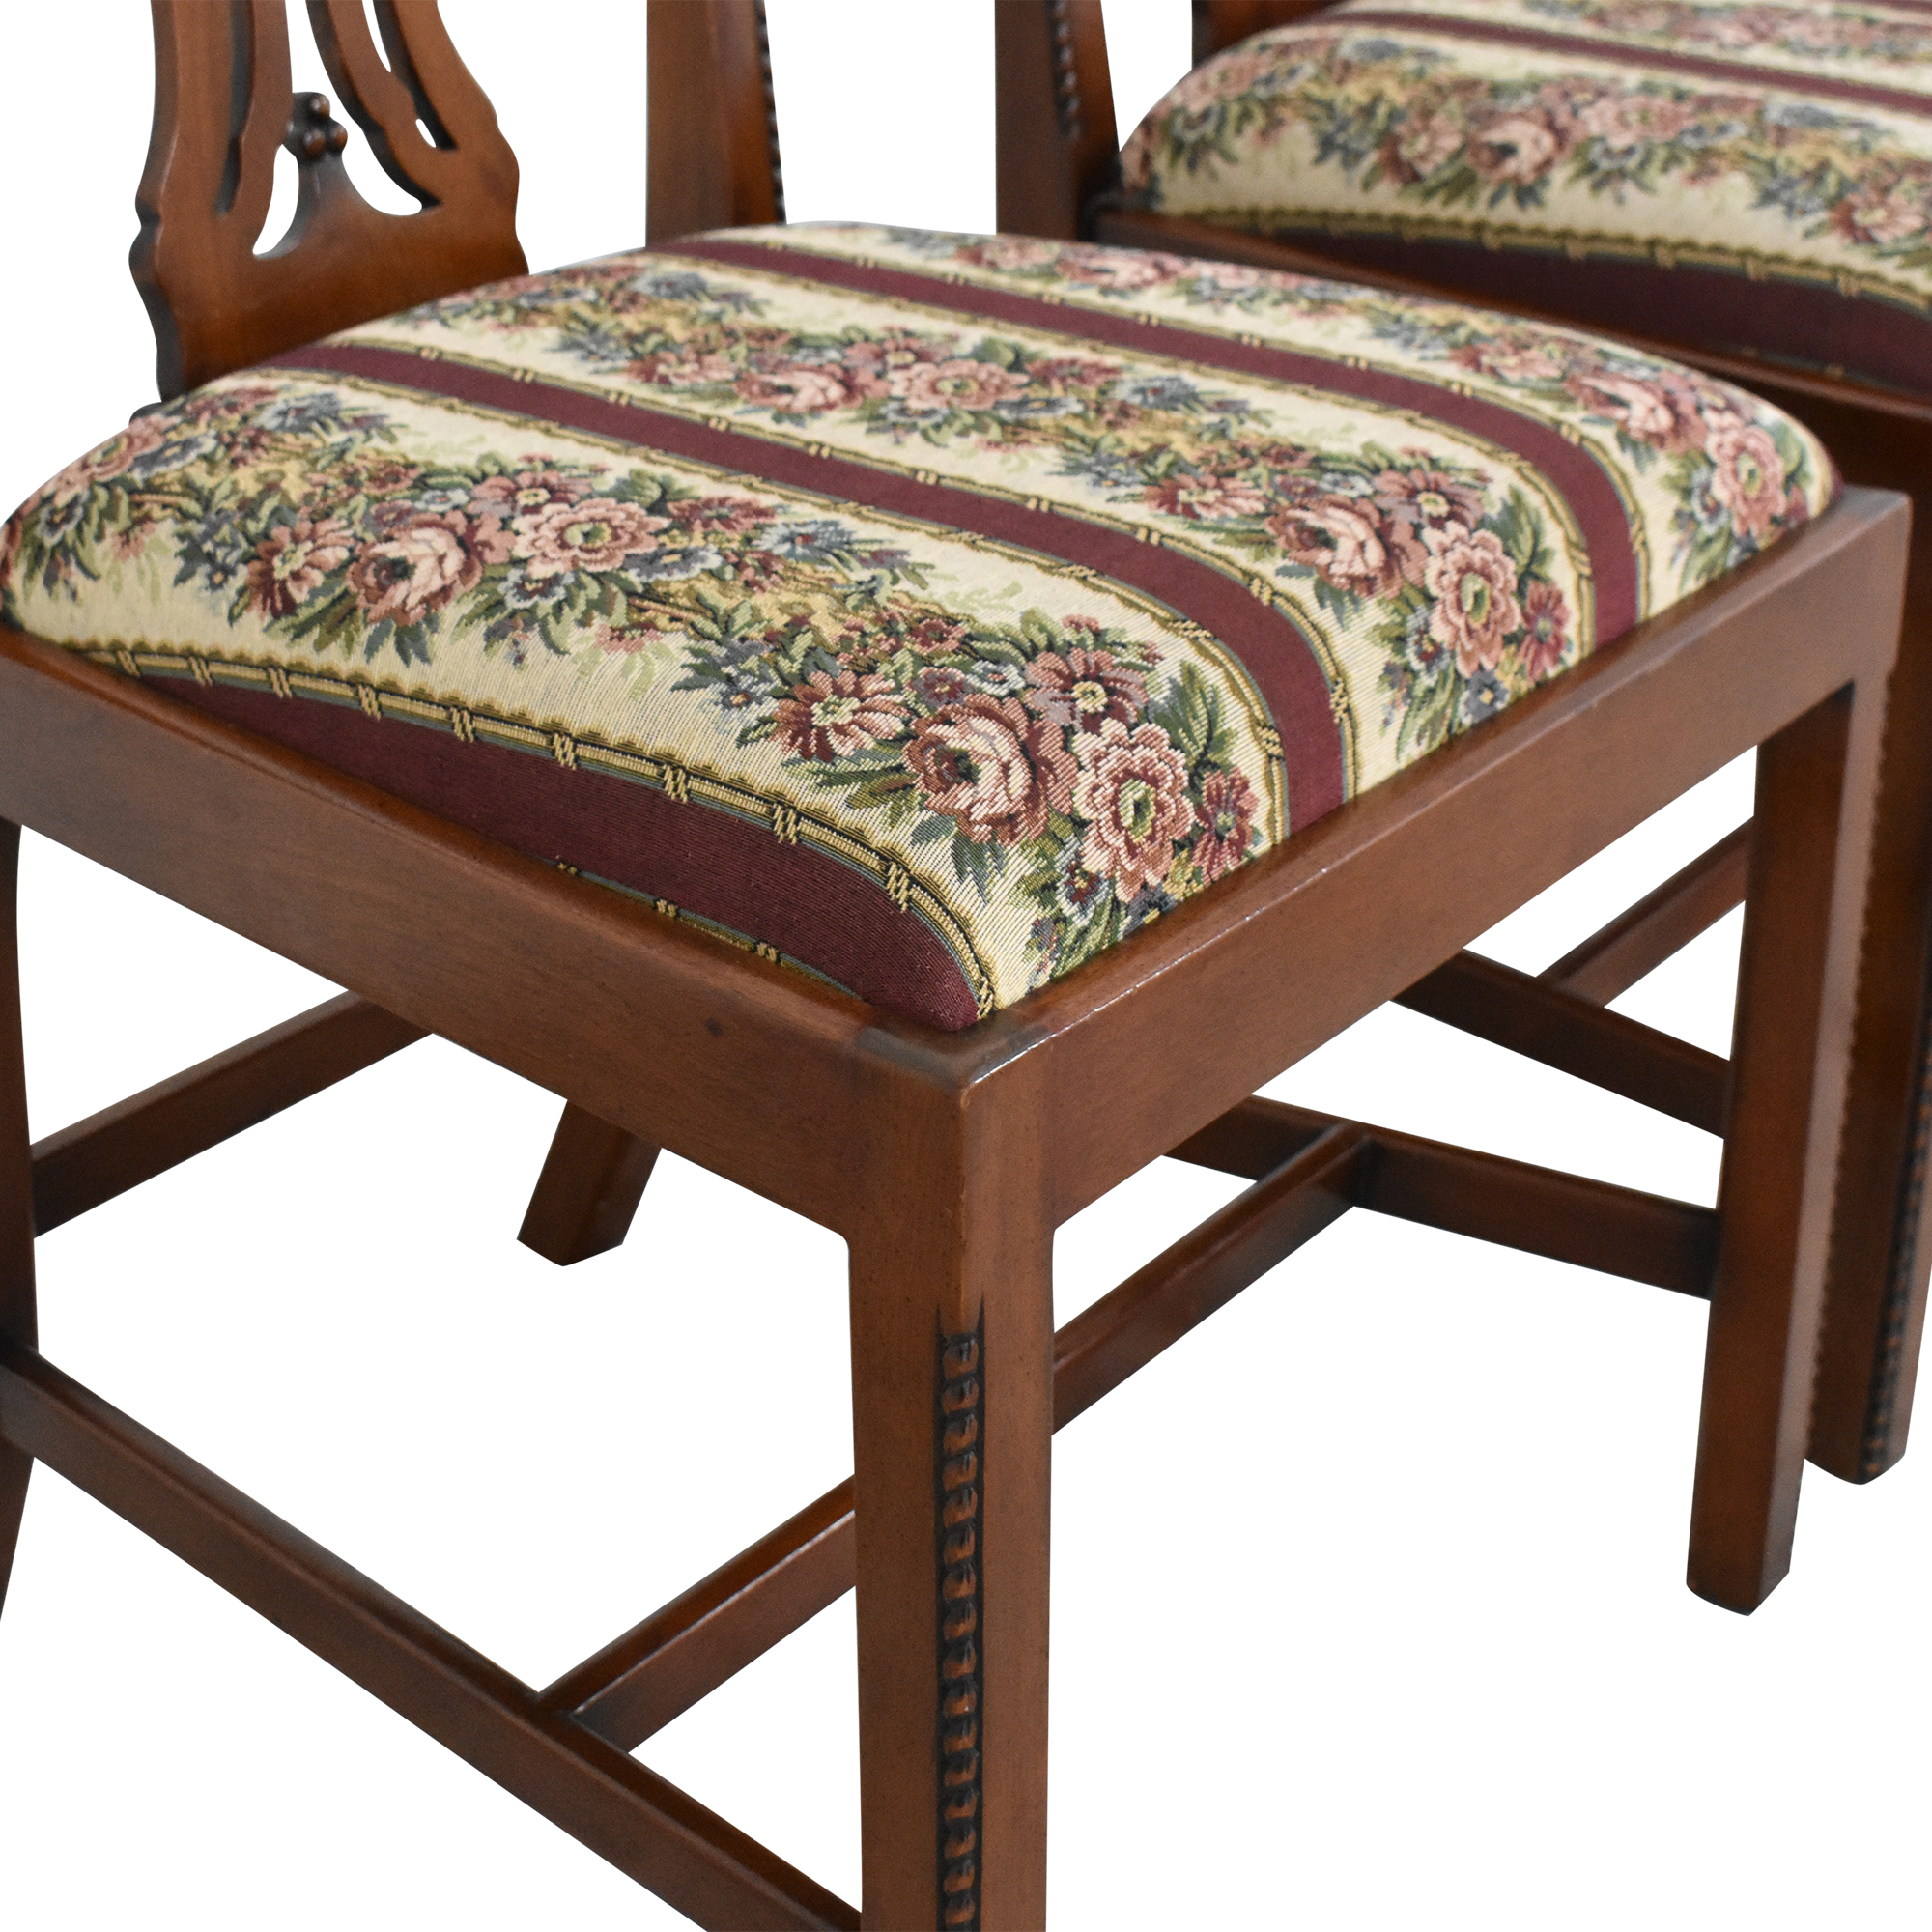 Maitland-Smith Maitland-Smith Chippendale Upholstered Dining Chairs Dining Chairs